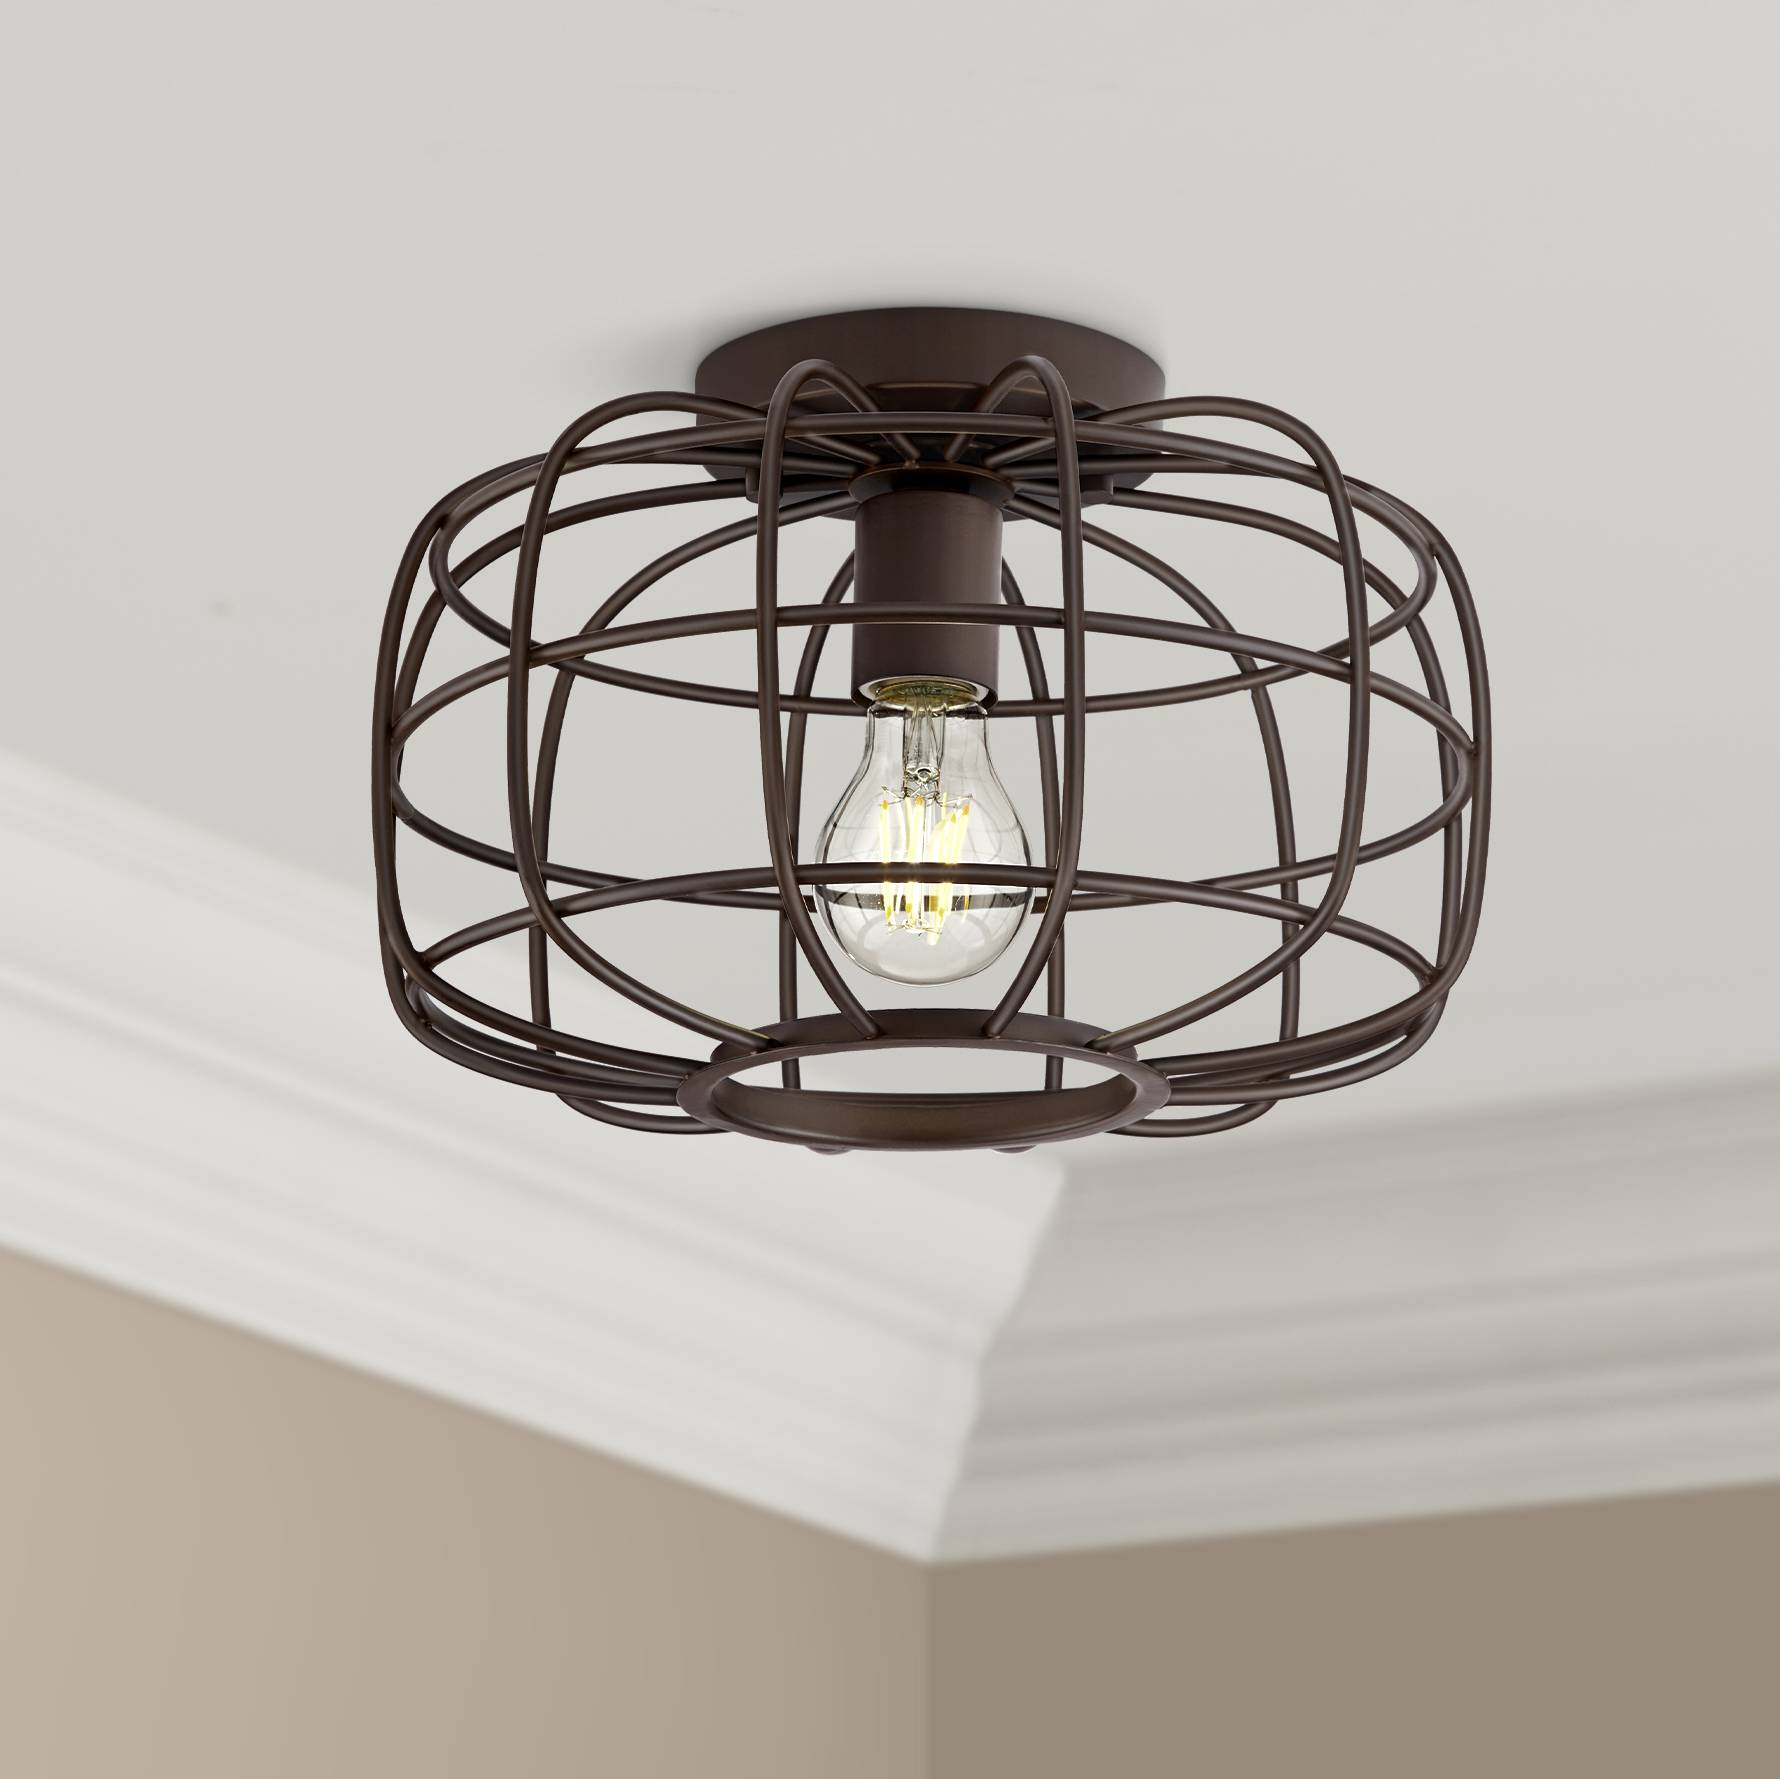 Details About Rustic Farmhouse Ceiling Light Flush Mount Fixture Oiled Bronze 12 For Bedroom